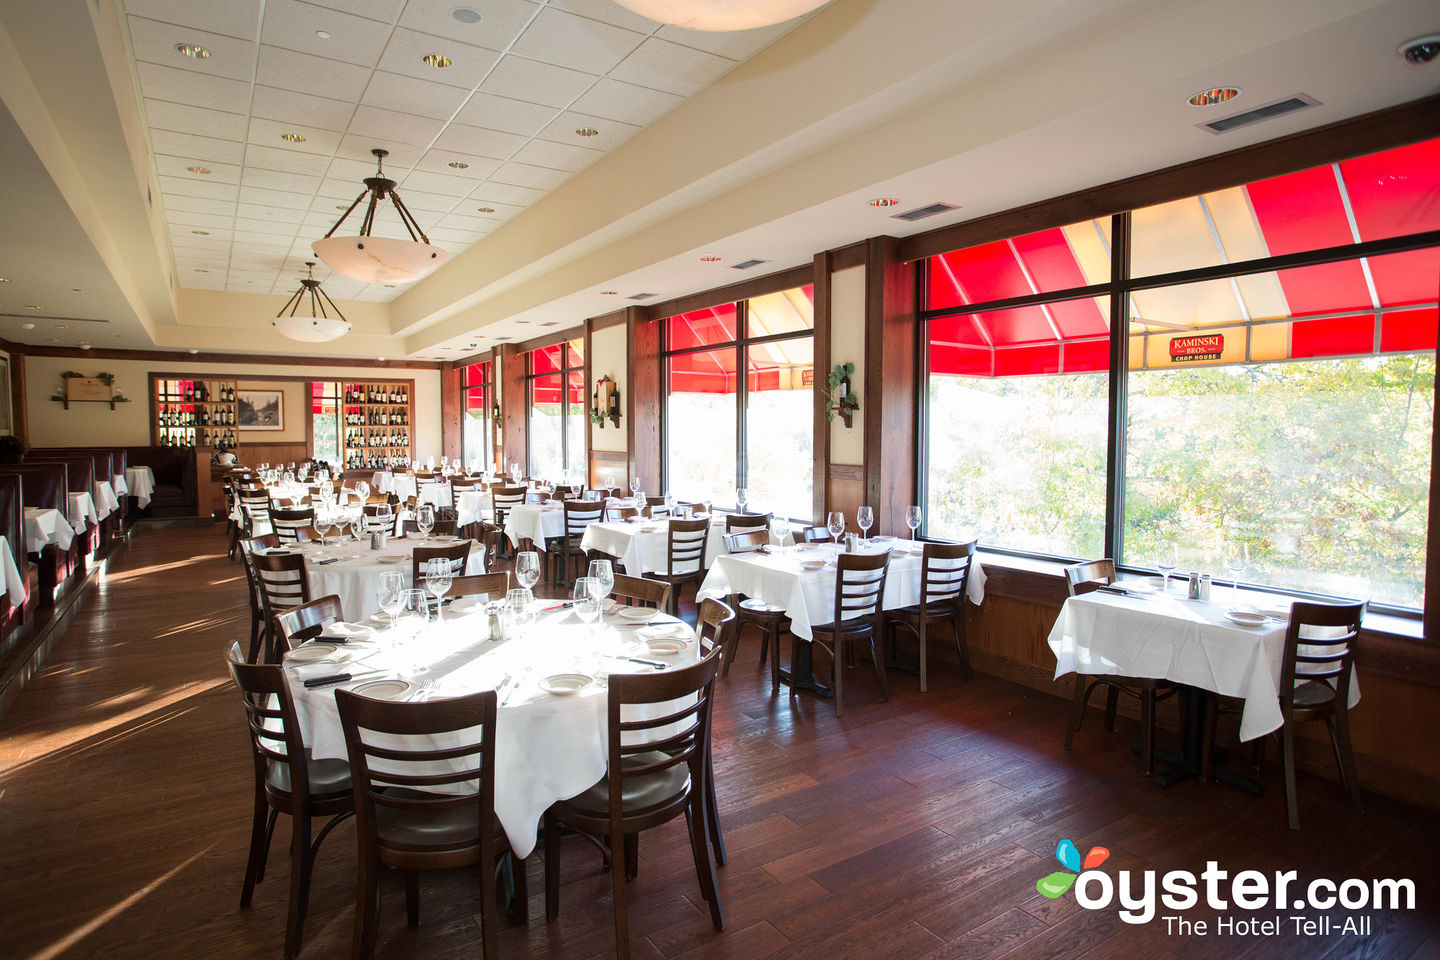 Chula Vista Resort Review Updated Rates Sep 2019: Chula Vista Resort Review: What To REALLY Expect If You Stay